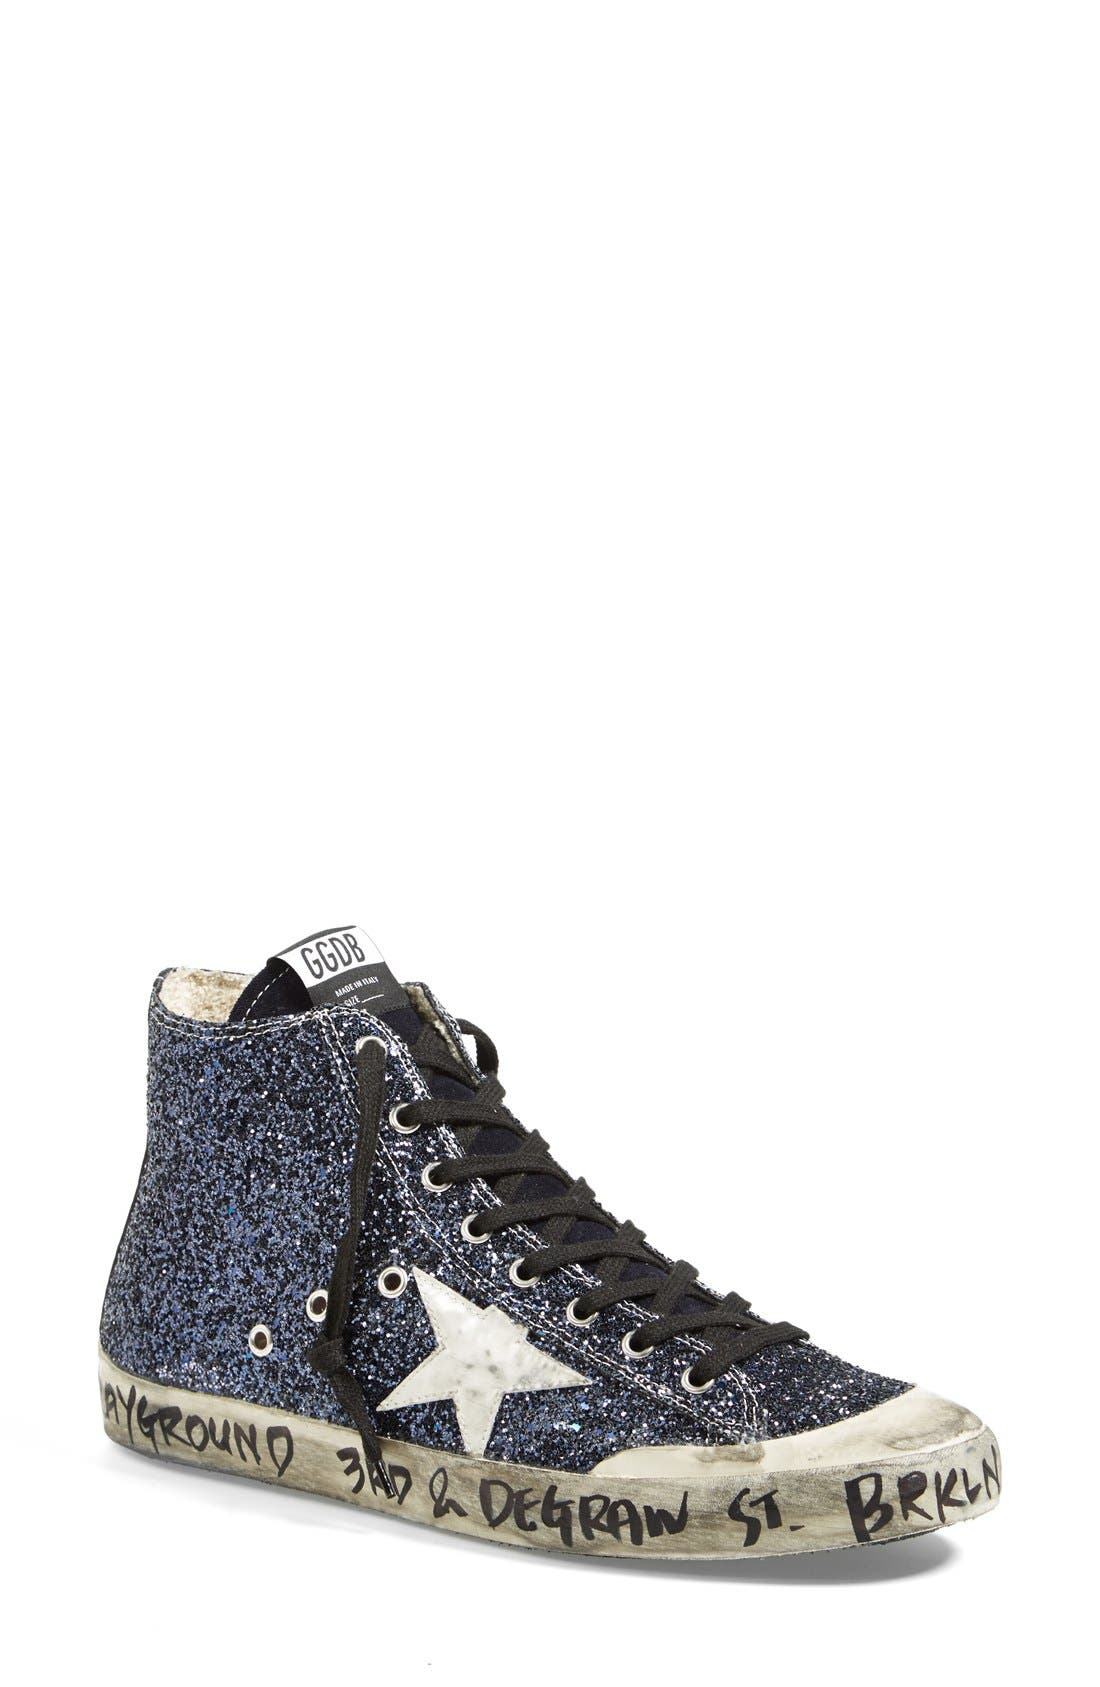 Alternate Image 1 Selected - Golden Goose 'Francy' Sneaker (Women)